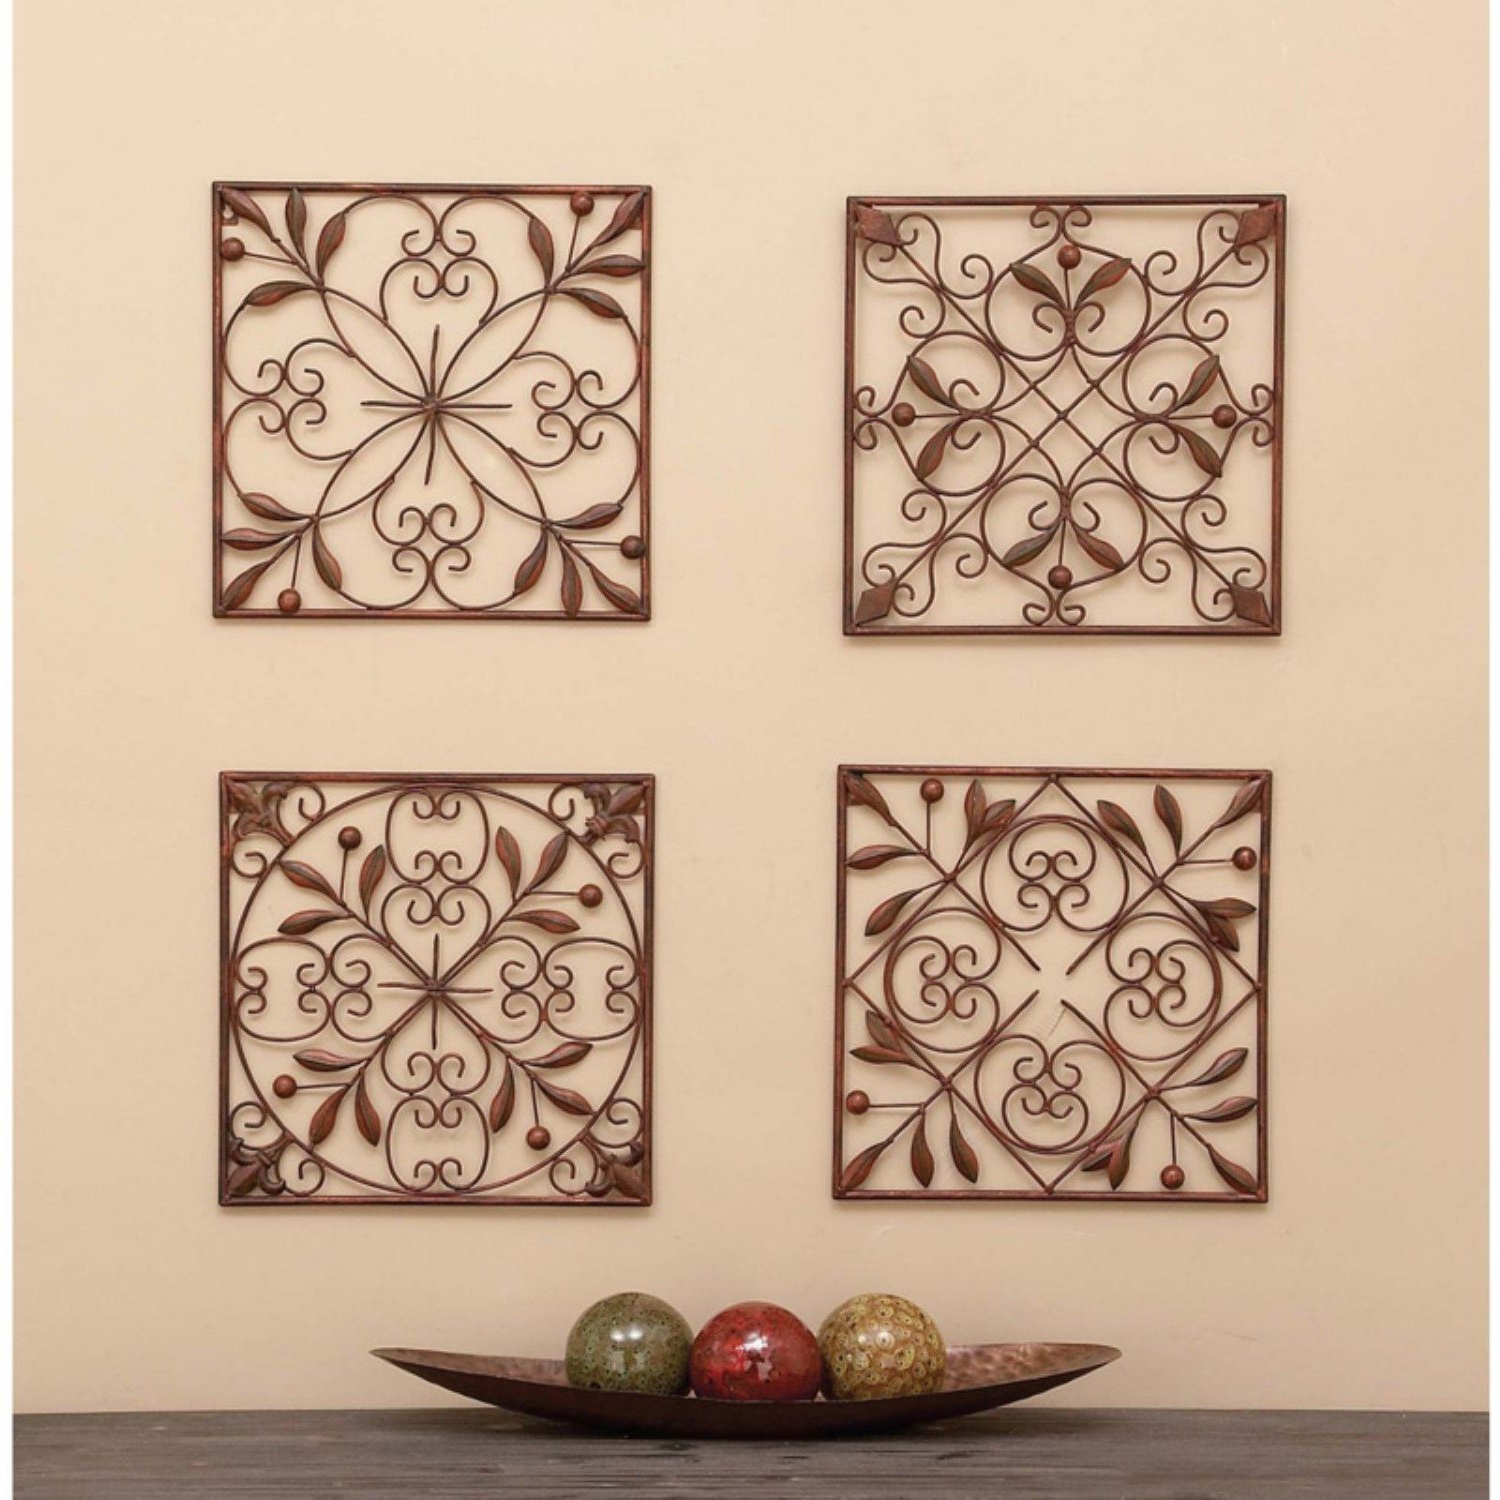 Square Metal Wall Decor Set Of 4 Home Decor Brands Intended For Favorite Metal Wall Decor (Set Of 4) (View 14 of 20)